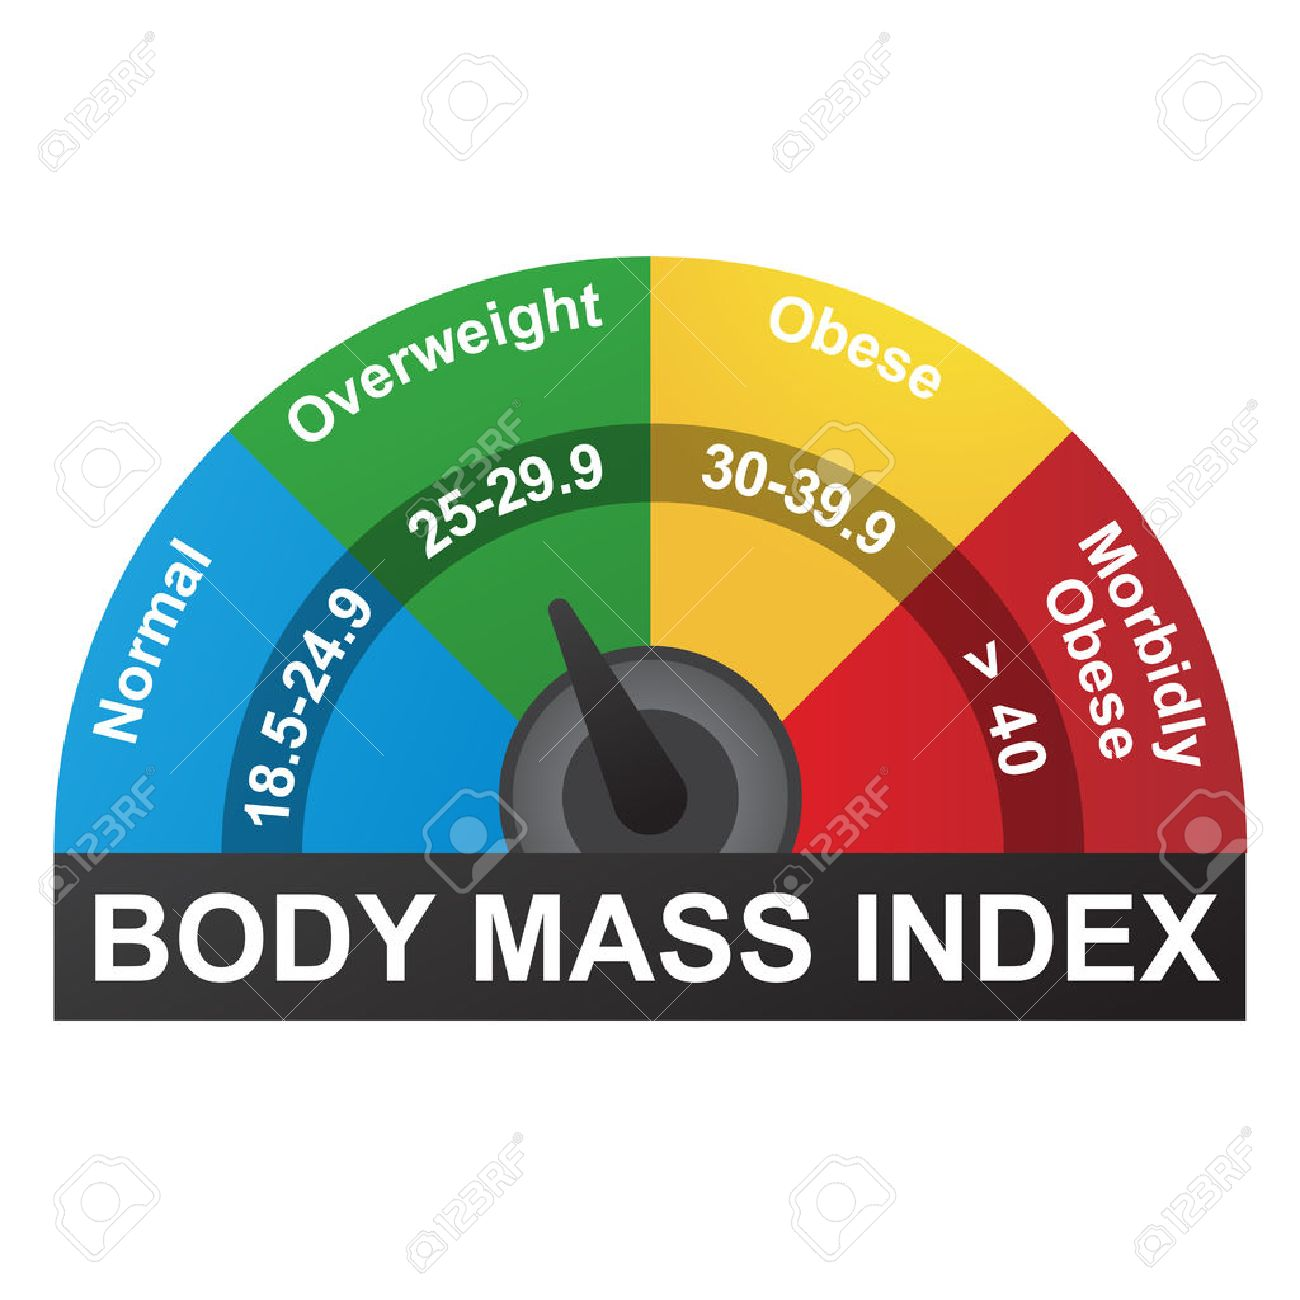 Bmi or body mass index infographic chart royalty free cliparts bmi or body mass index infographic chart stock vector 58284540 nvjuhfo Image collections